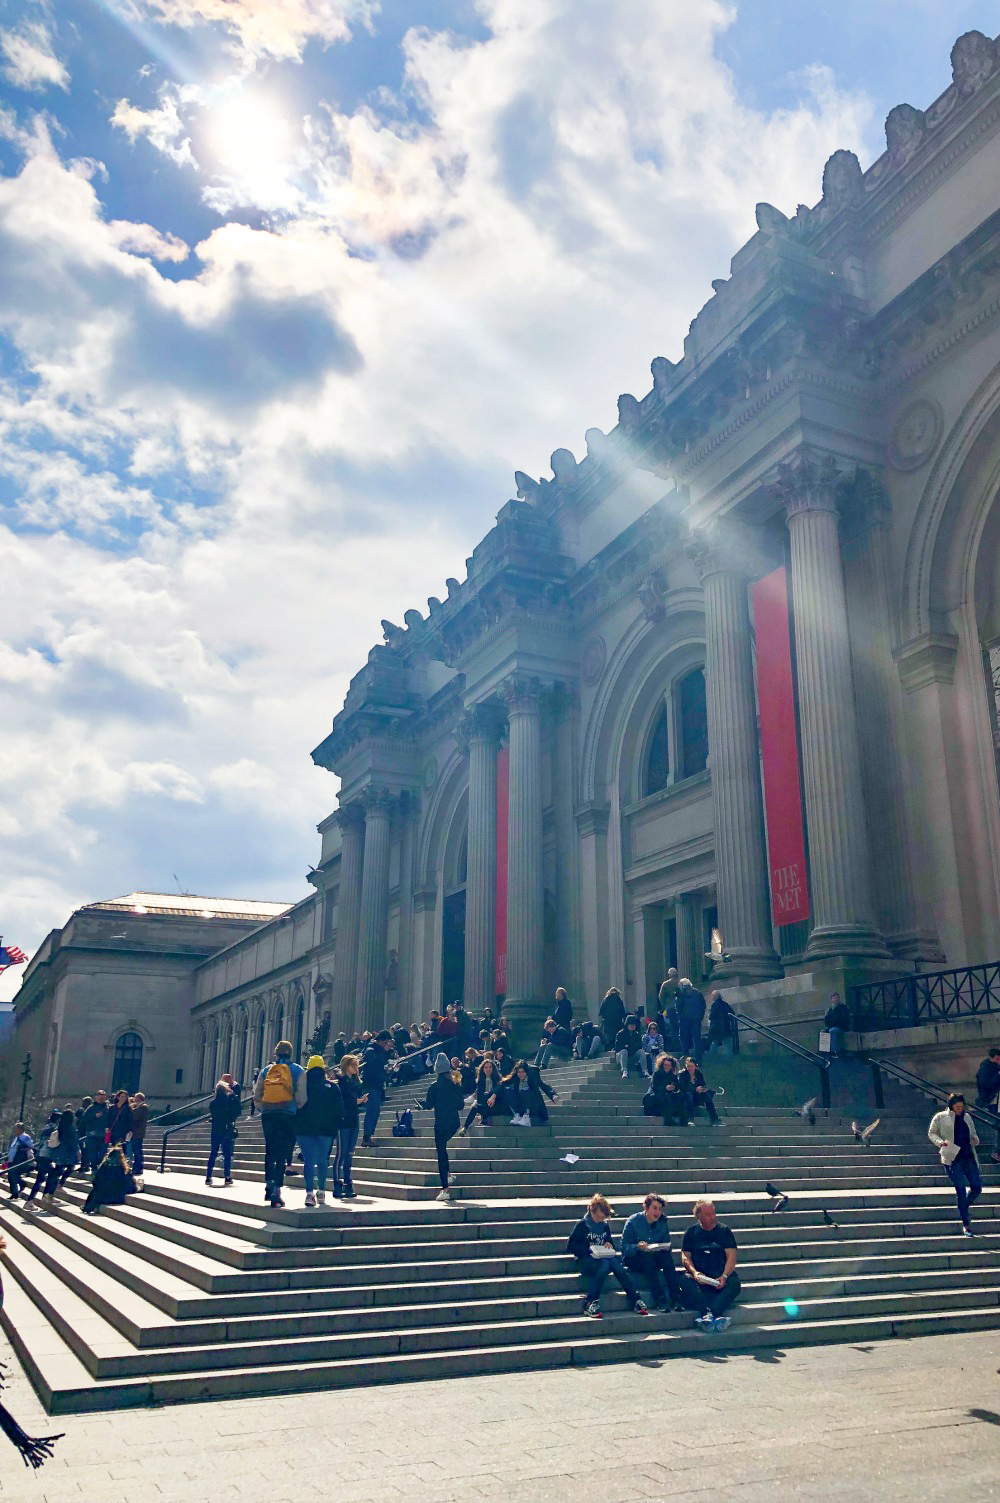 Affordable New York City Travel Guide I The Met Museum #Travel #TRavelGuide #NYC